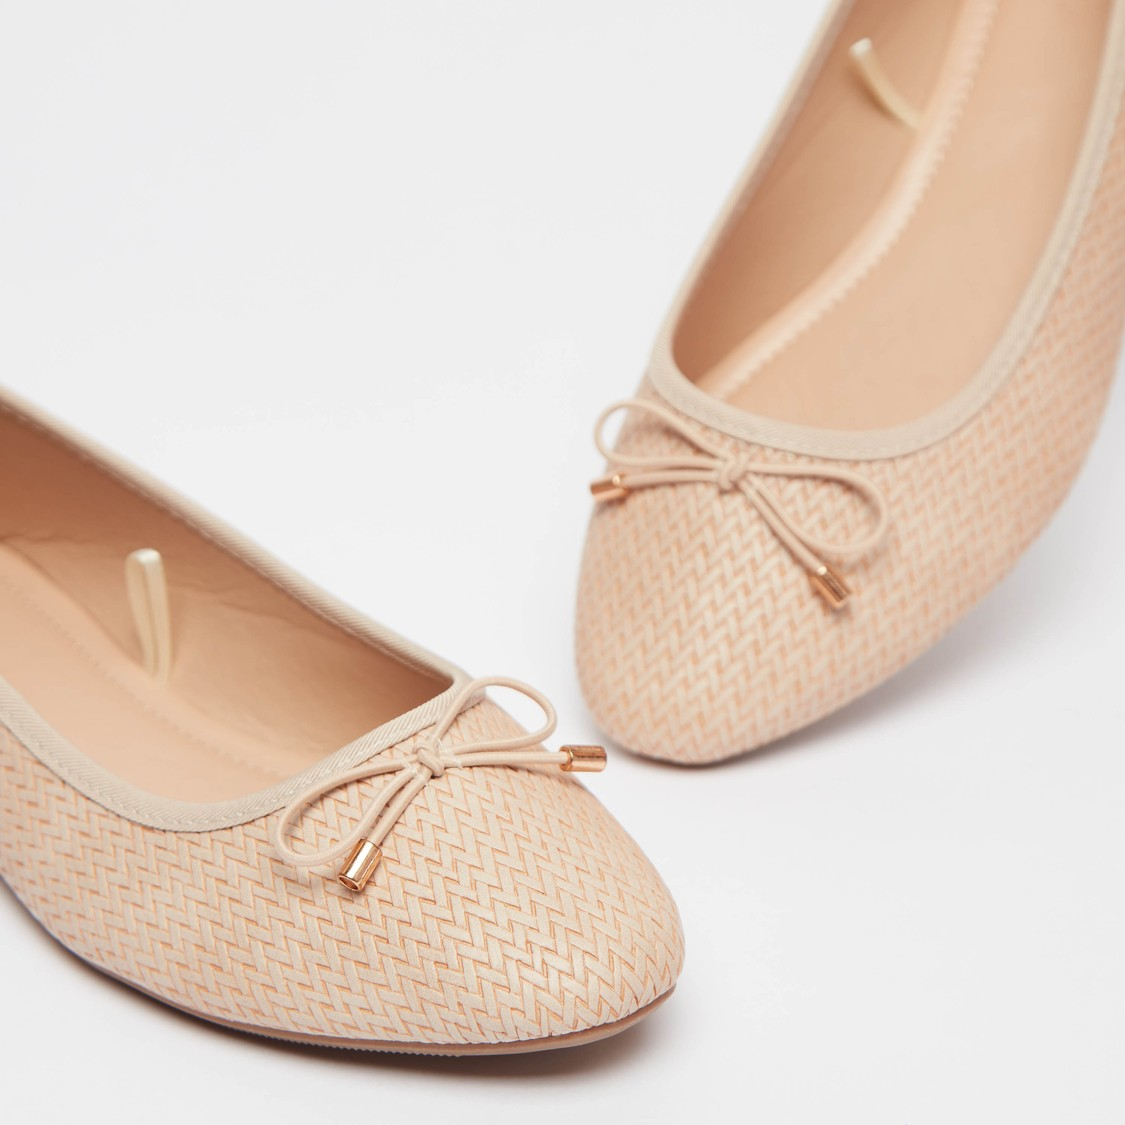 Textured Ballerinas with Bow Applique